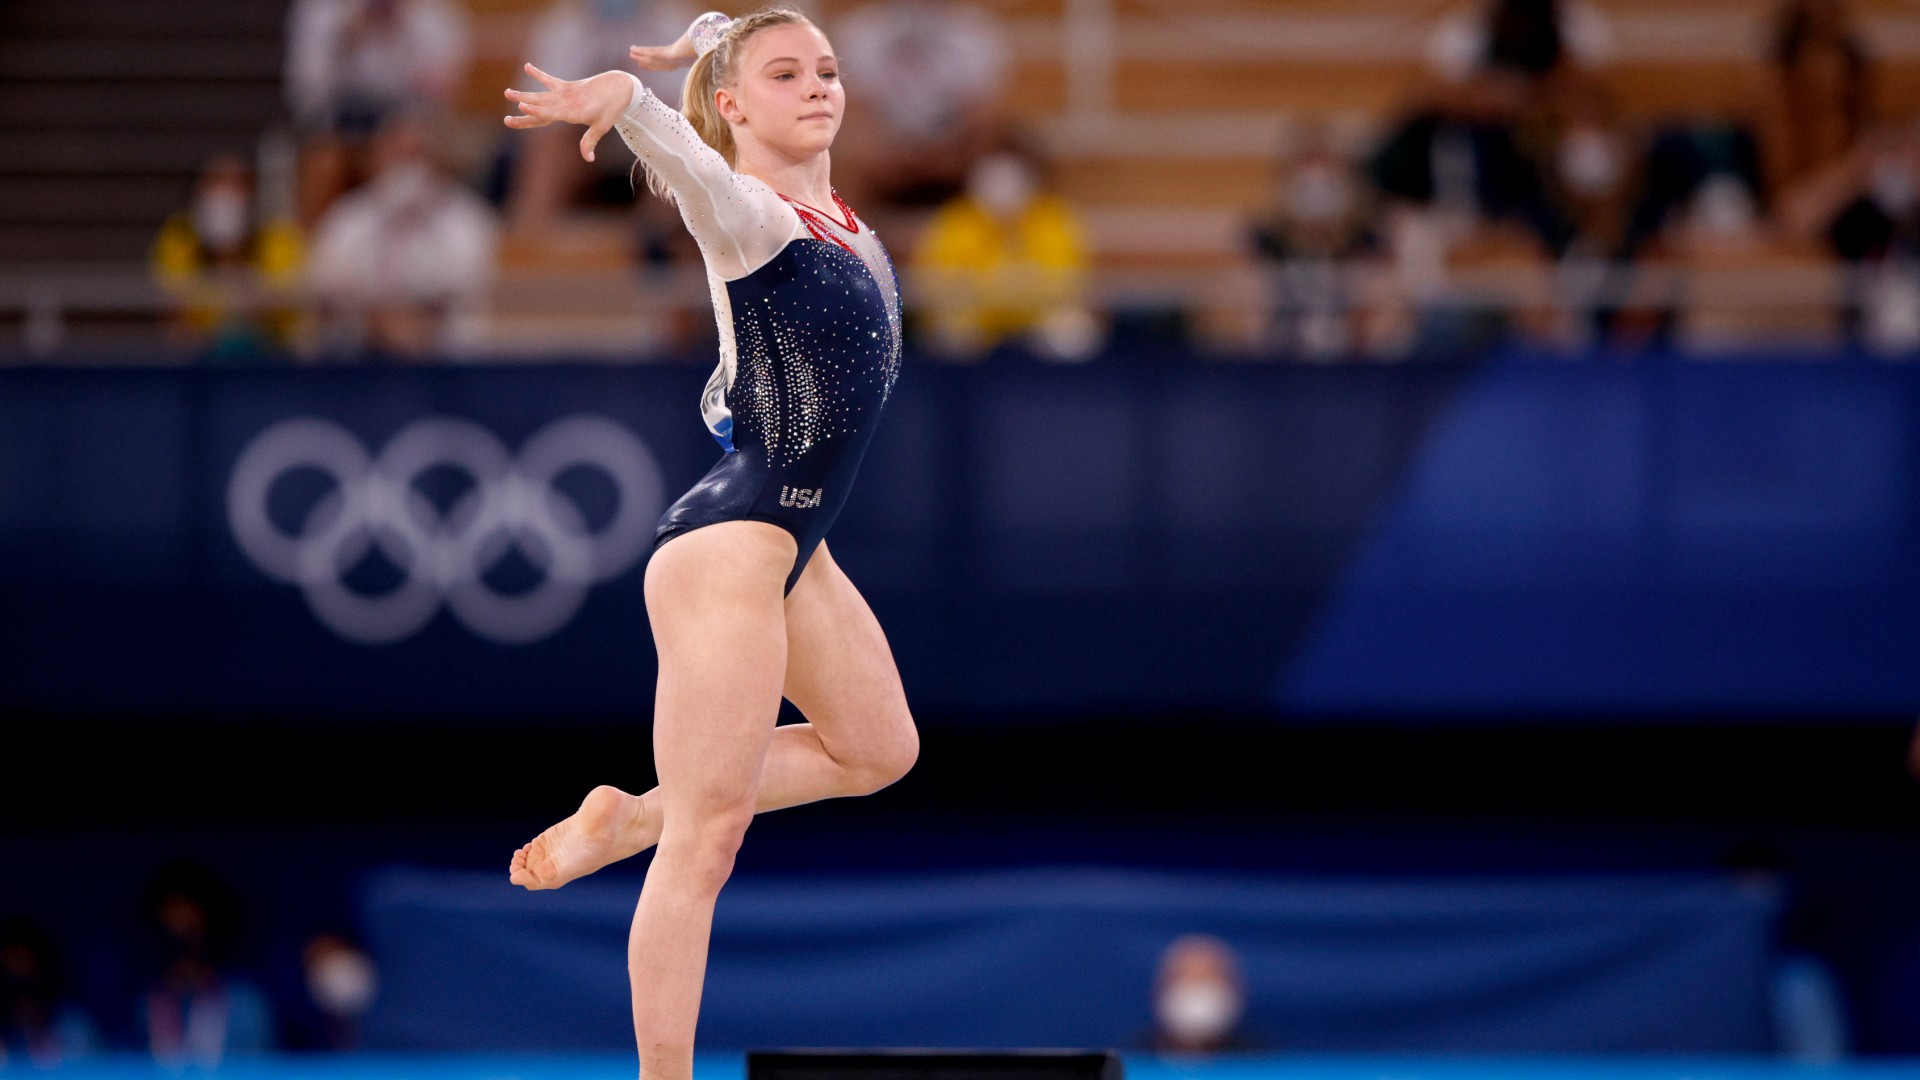 Olympic Gymnastics Results: Jade Carey Takes Home Gold Medal After Dazzling Floor Routine